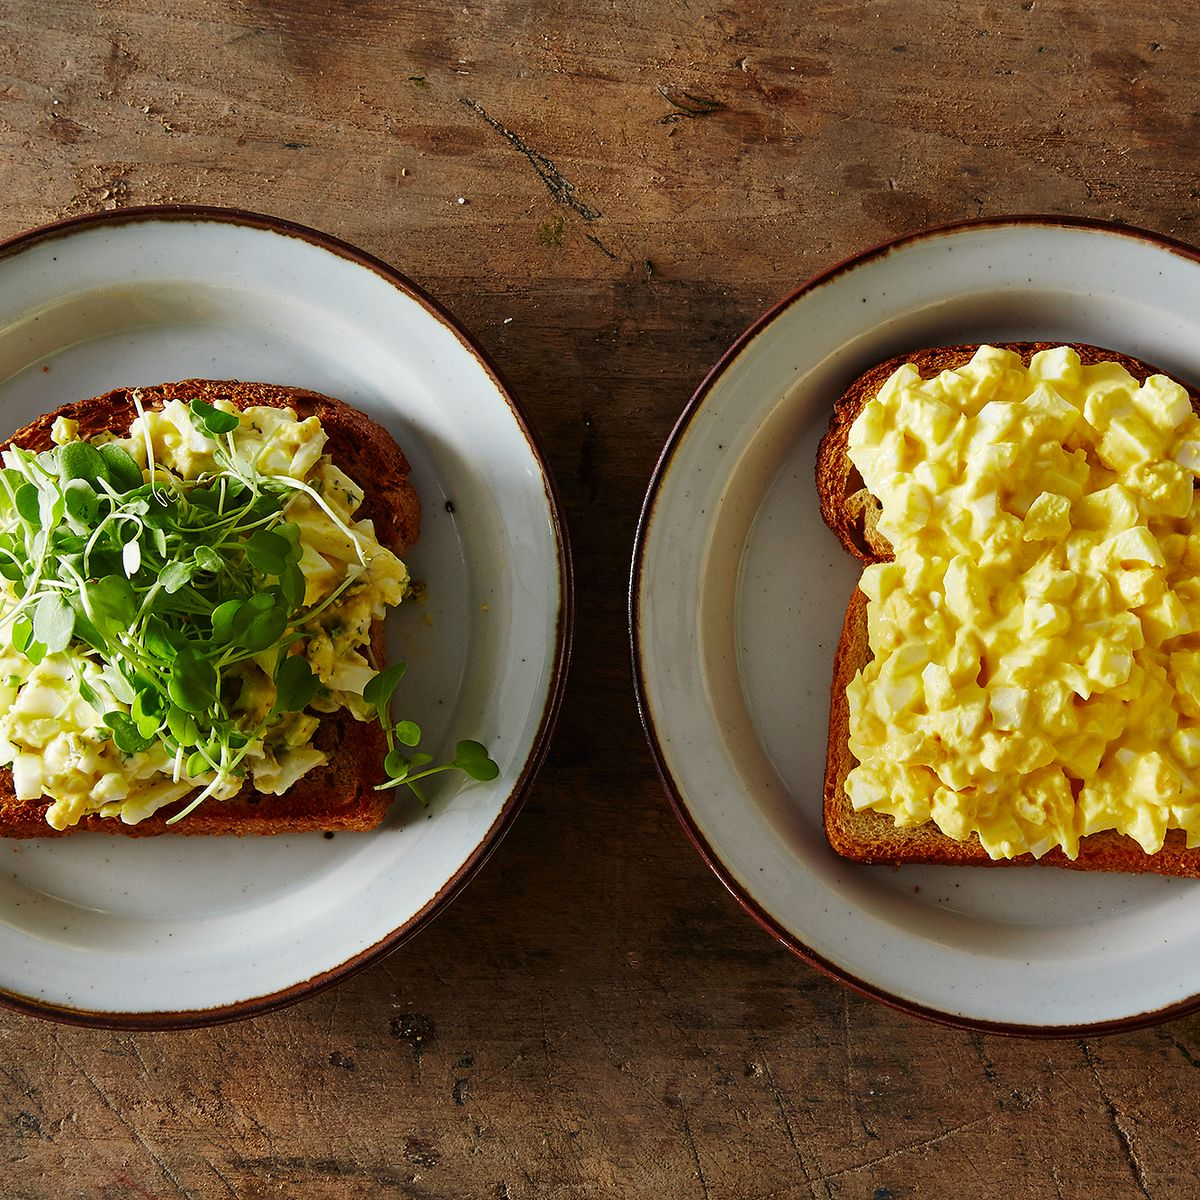 How to Make Egg Salad—Two Very Different Ways